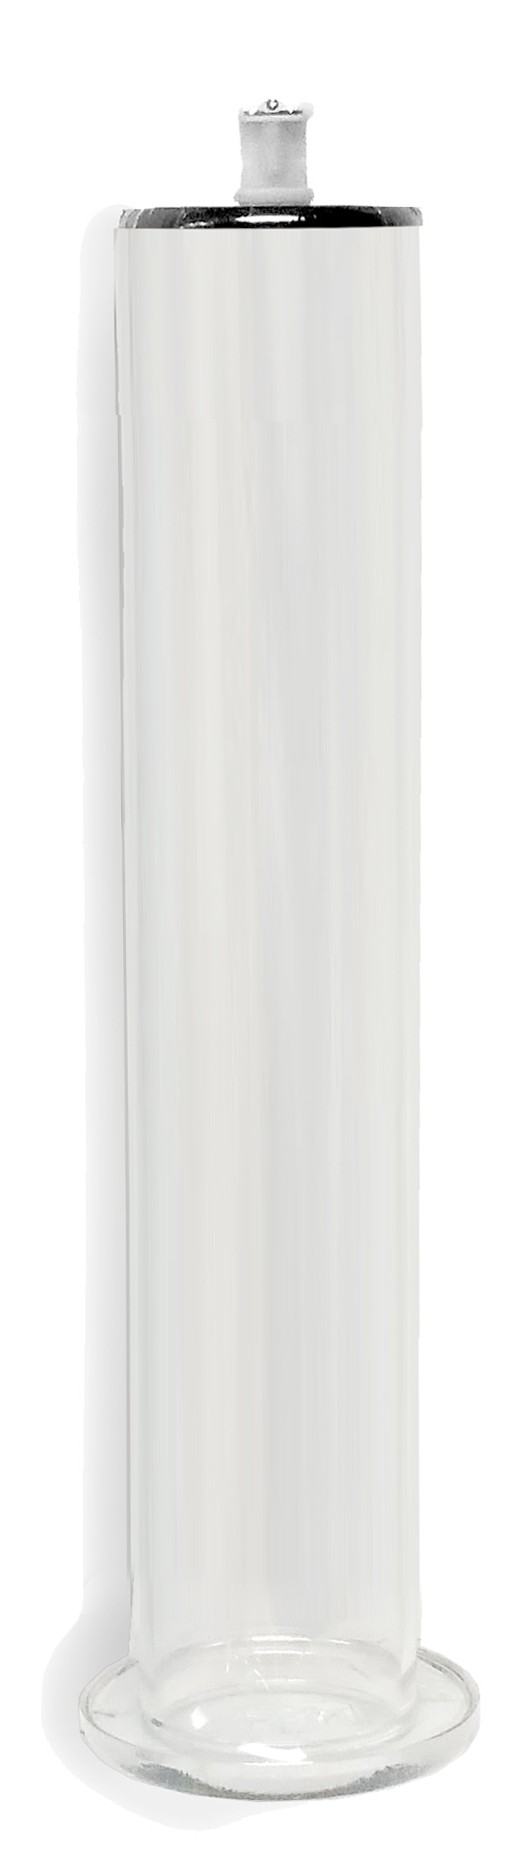 First 12-Inch Expansion Cylinder